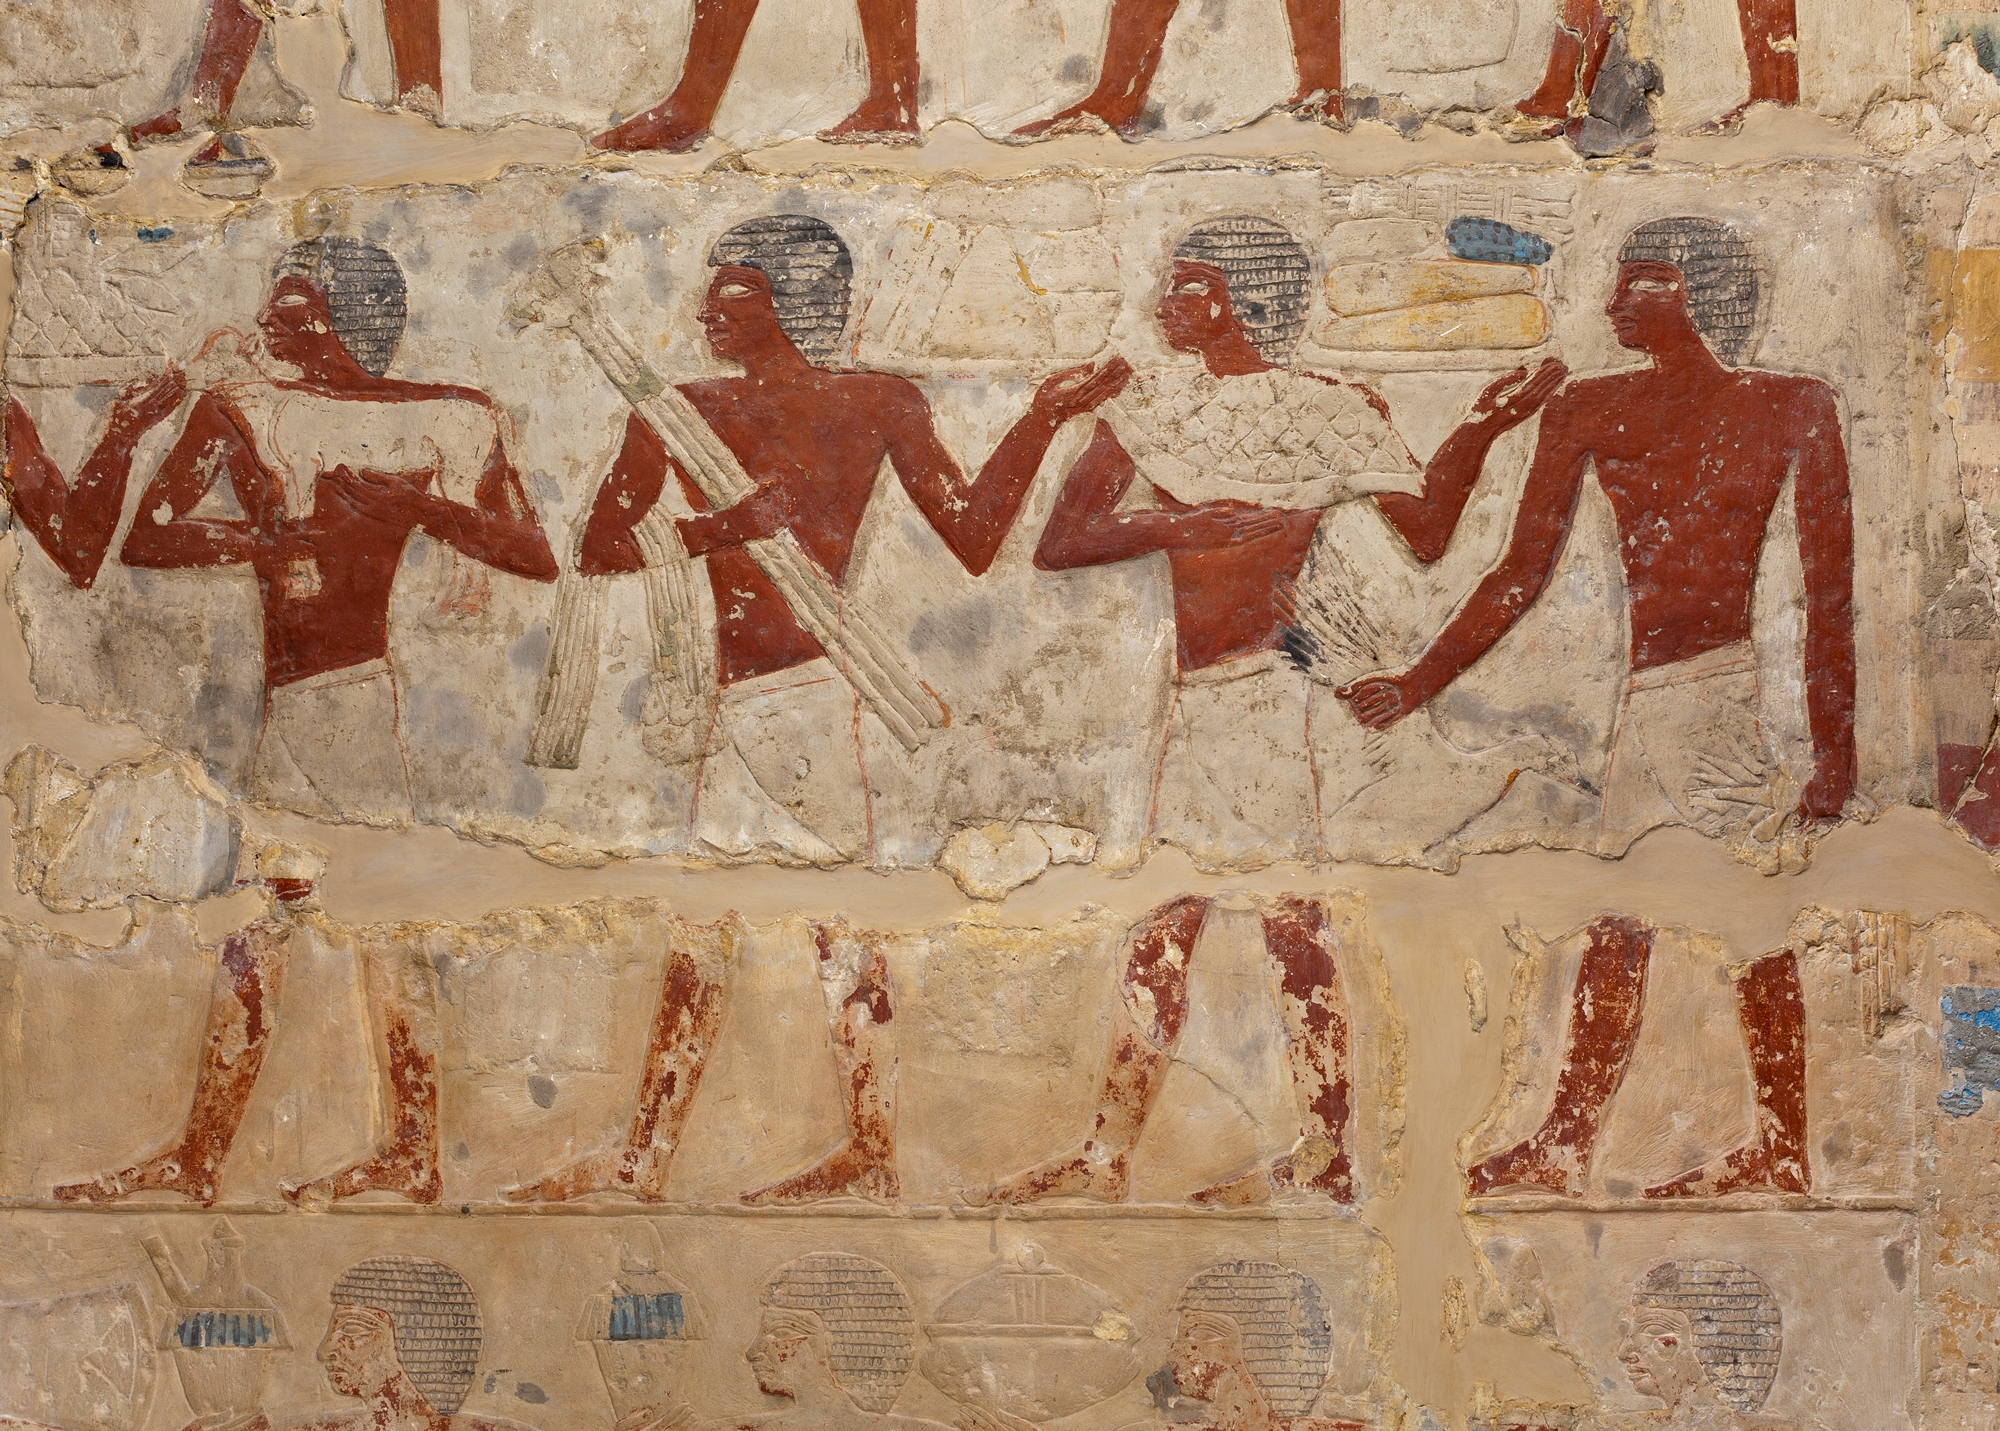 How The Ancient Egyptian Economy Laid The Groundwork For